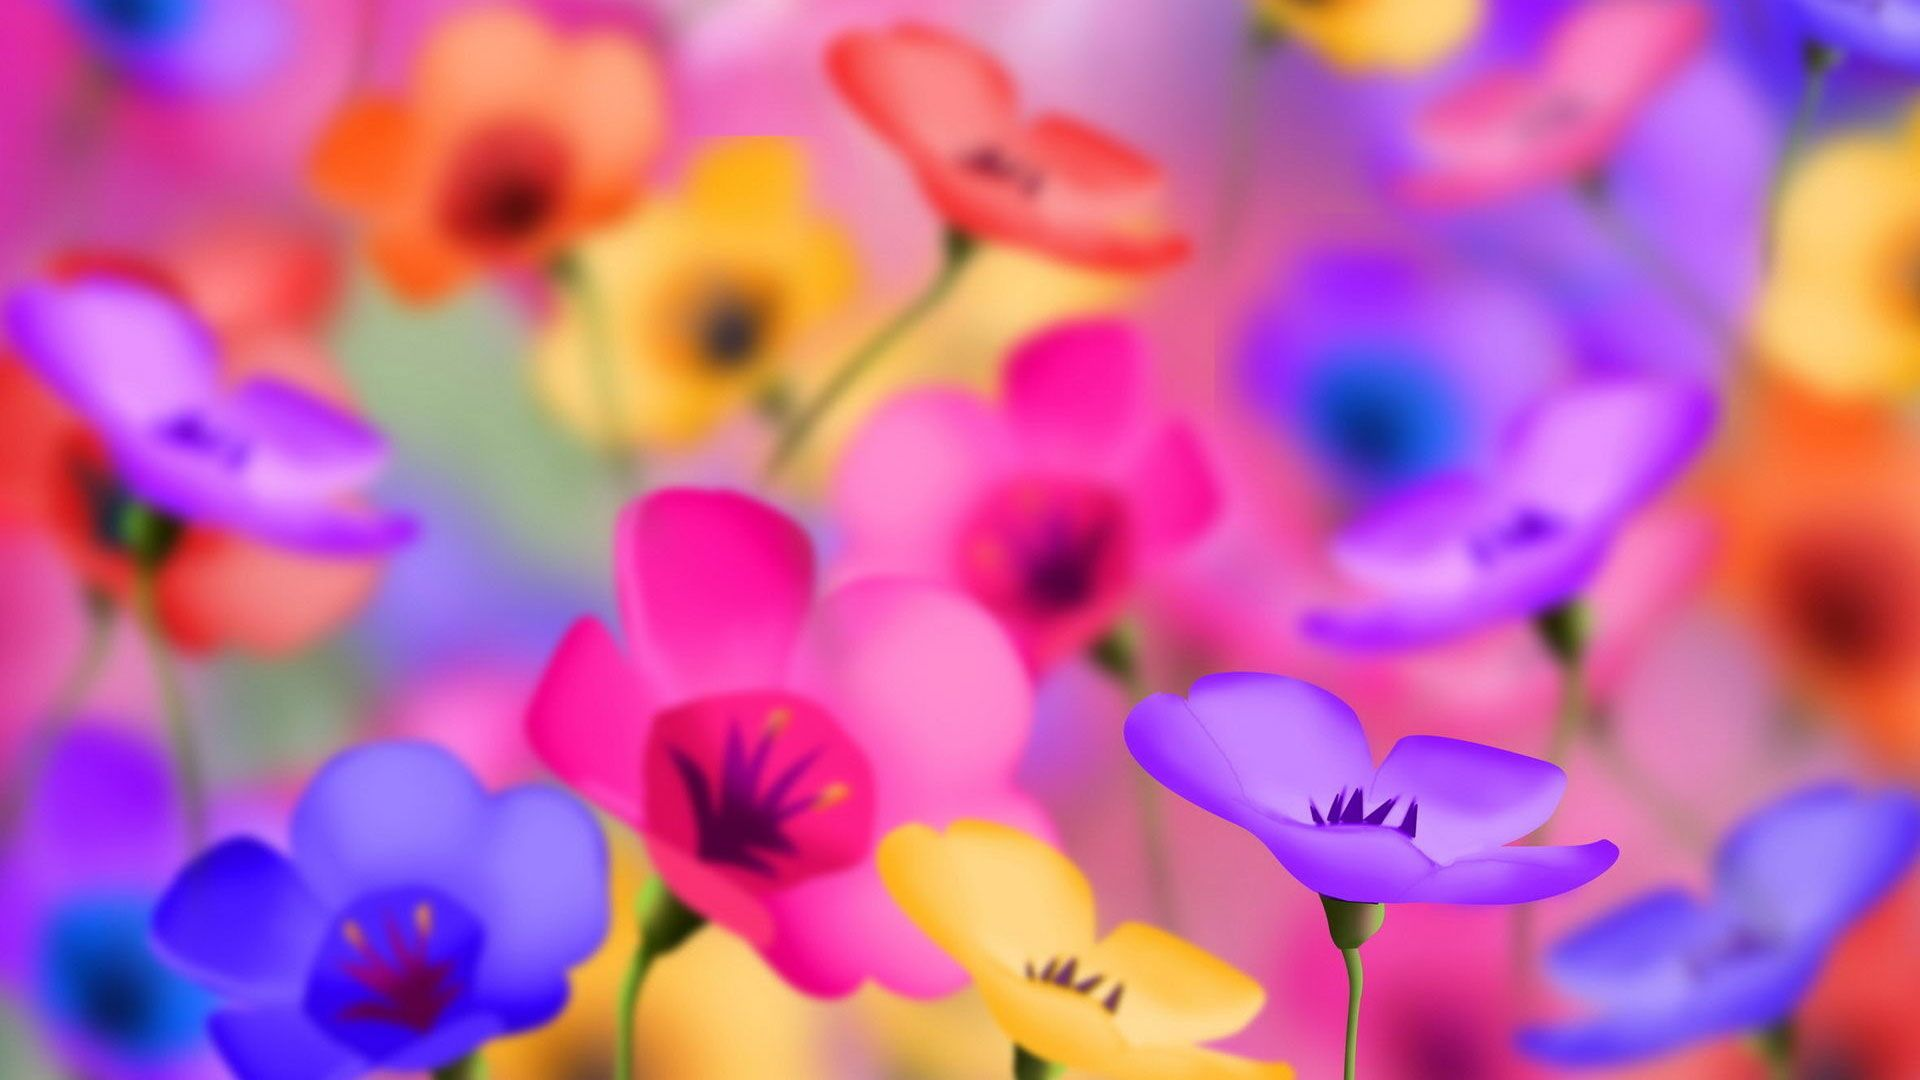 Hd Pics Photos Flowers Colorful Bright Desktop Background Wallpaper Colorful Flowers Amazing Flowers Flower Pictures